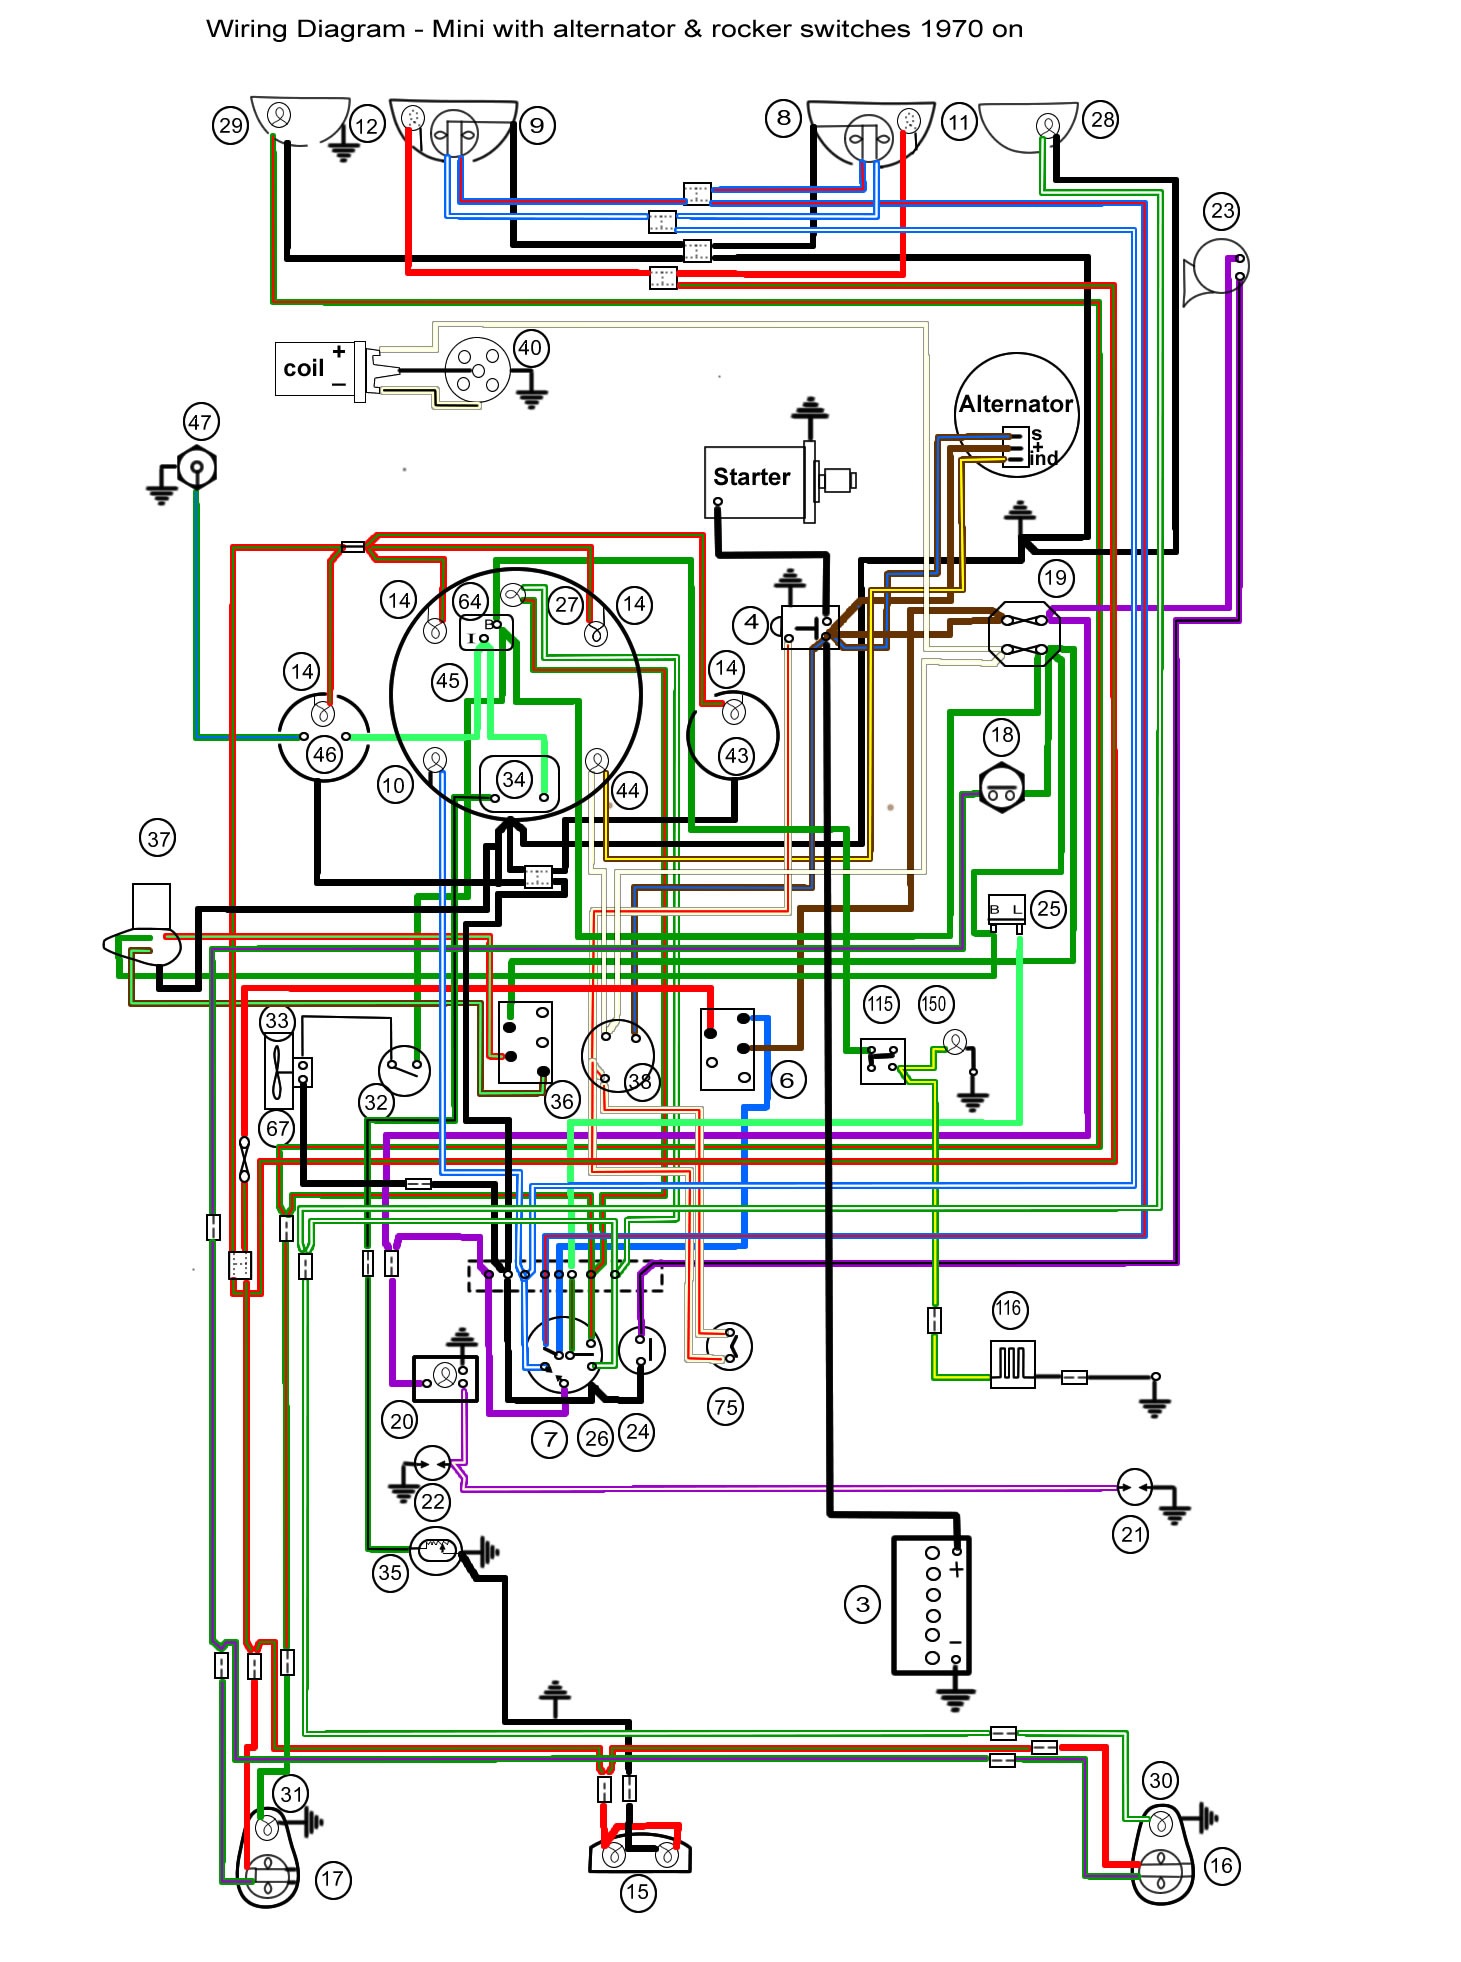 Cooper Switch Wiring Diagrams Not Lossing Diagram Gfci Outlet Rover Mini Spi Detailed Rh 7 6 Ocotillo Paysage Com 3 Way